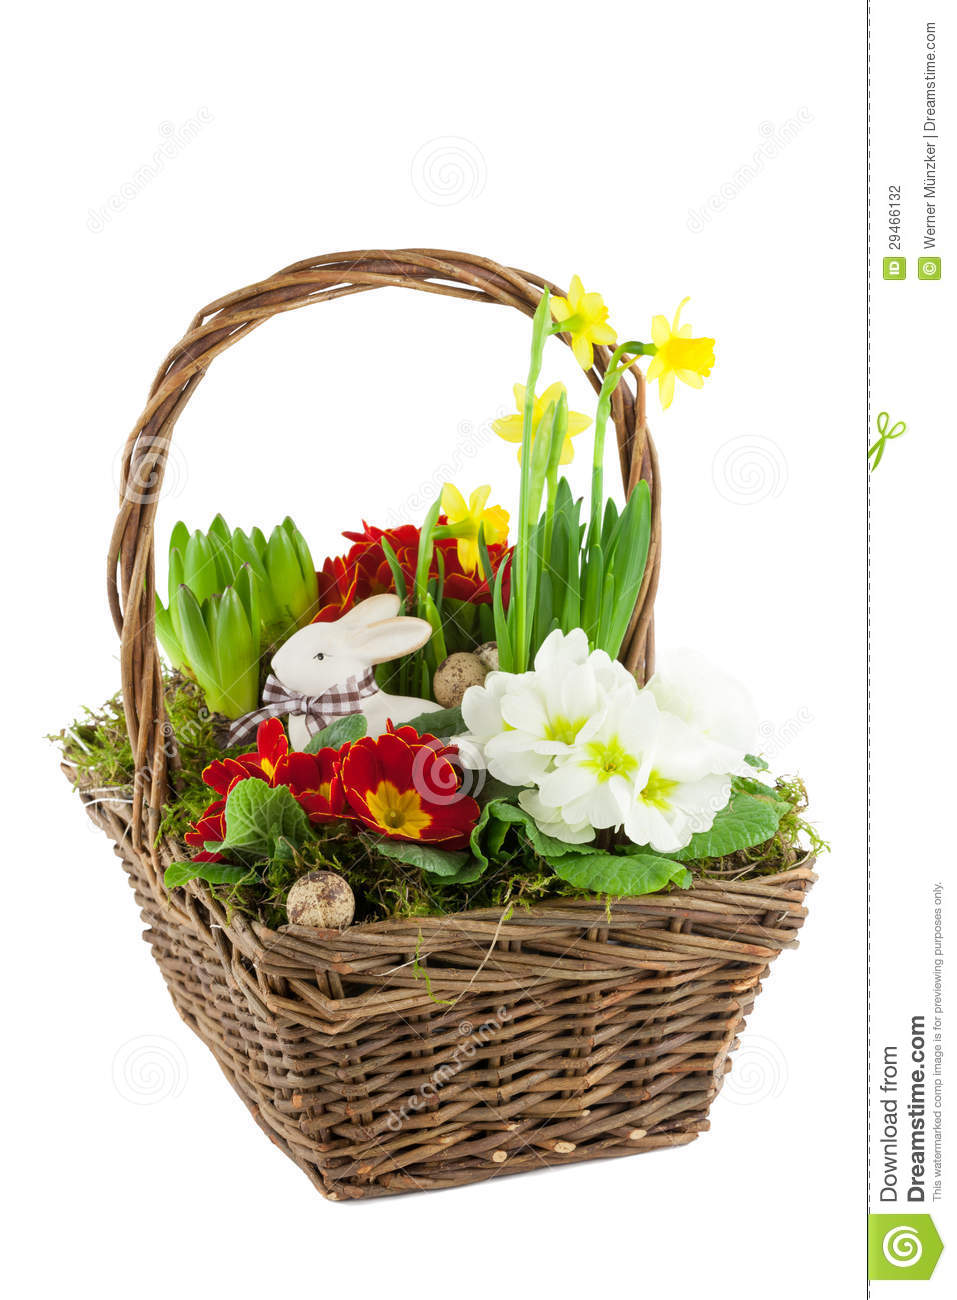 Basket With Spring Flowers Stock Photo Image Of White 29466132